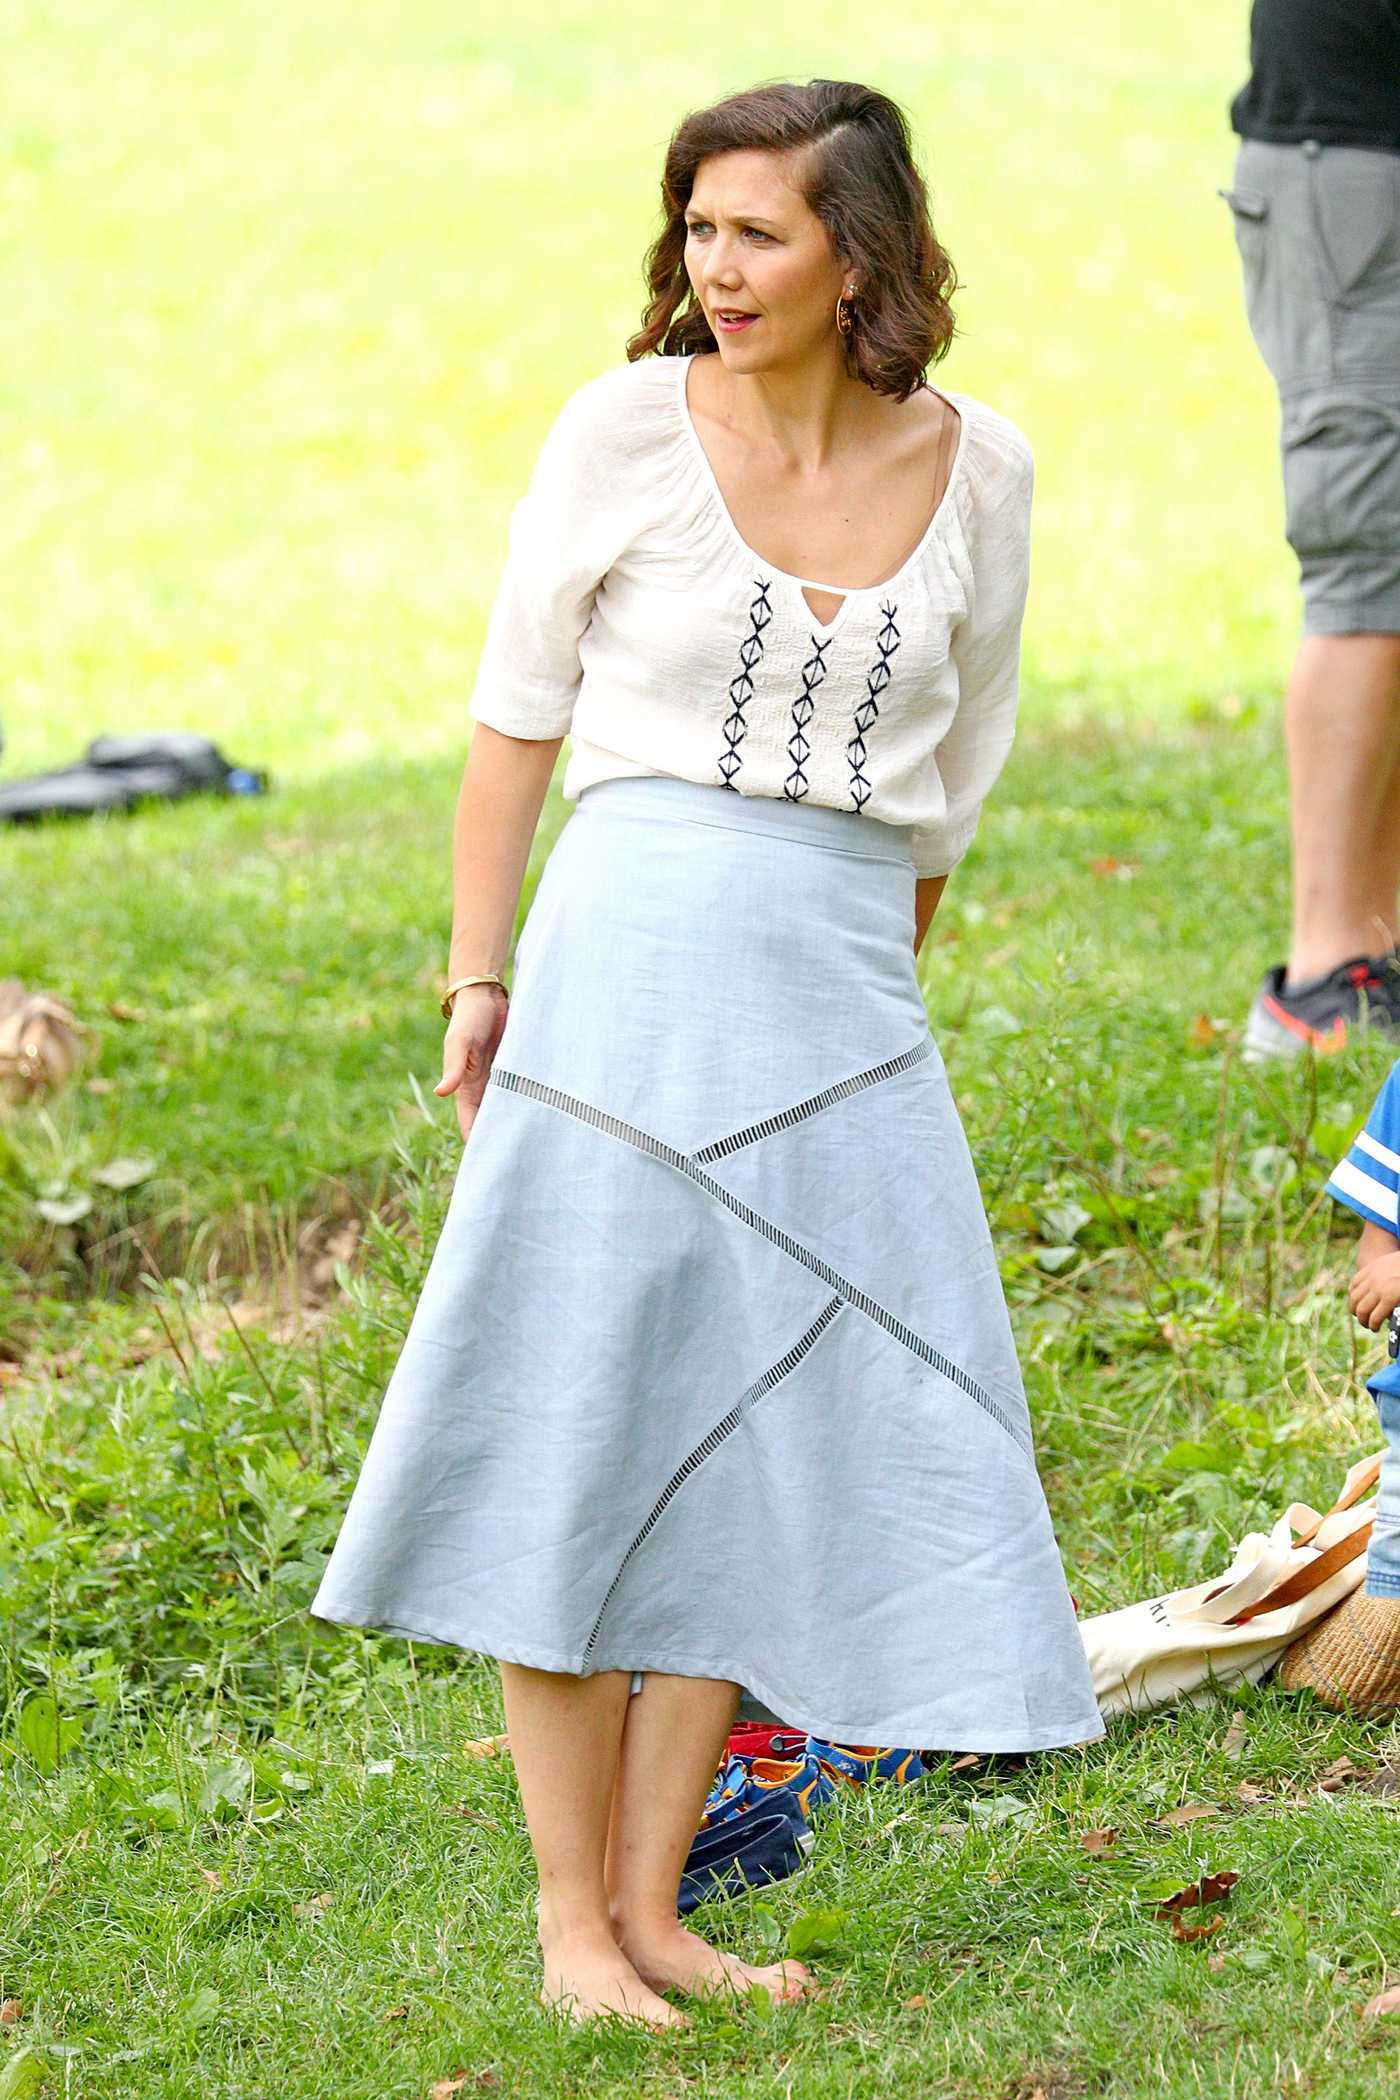 Maggie Gyllenhaal on the Set of The Kindergarten Teacher in Central Park in New York 08/11/2017